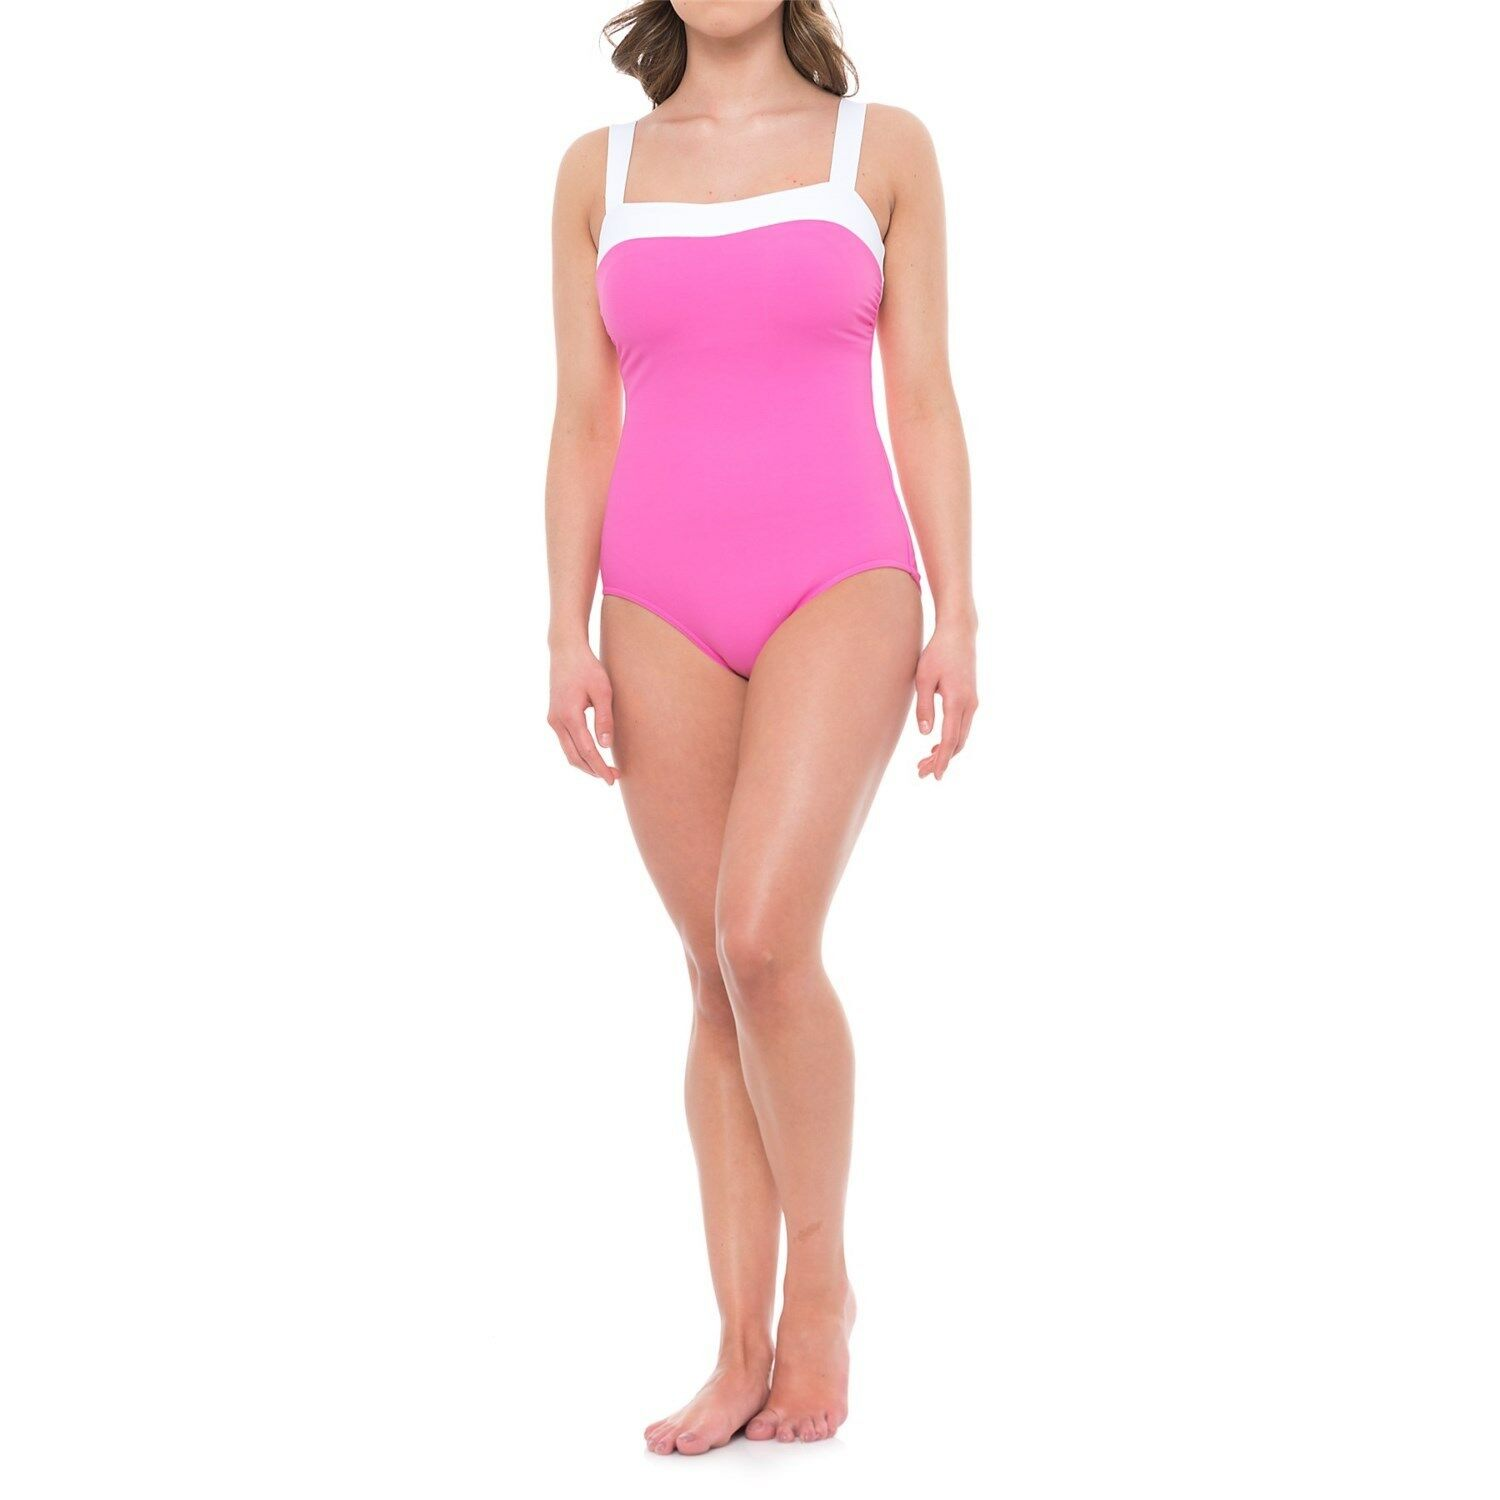 NEW MAGICSUIT MIRACLESUIT SWIMSUIT  150 14 44 Slimming Spectra Bright Pink White